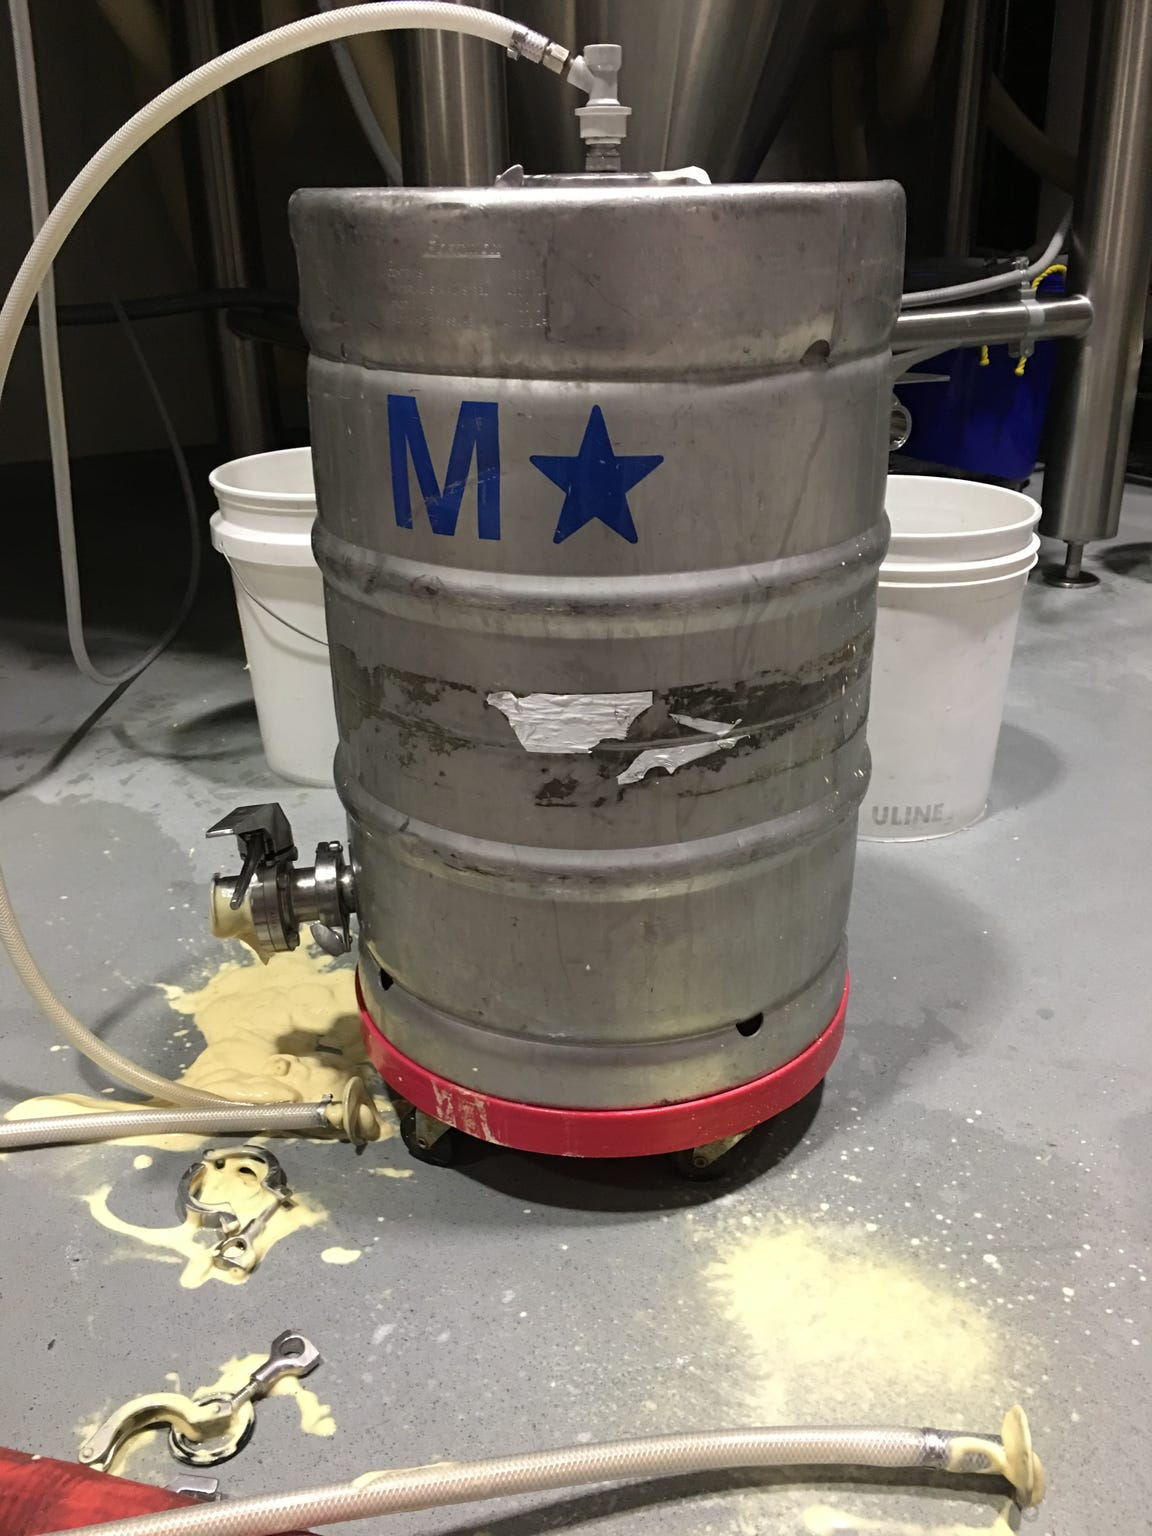 A keg used to hold yeast at The Alchemist in Stowe — remnants of the foamy yeast mixture has spilled onto the floor.